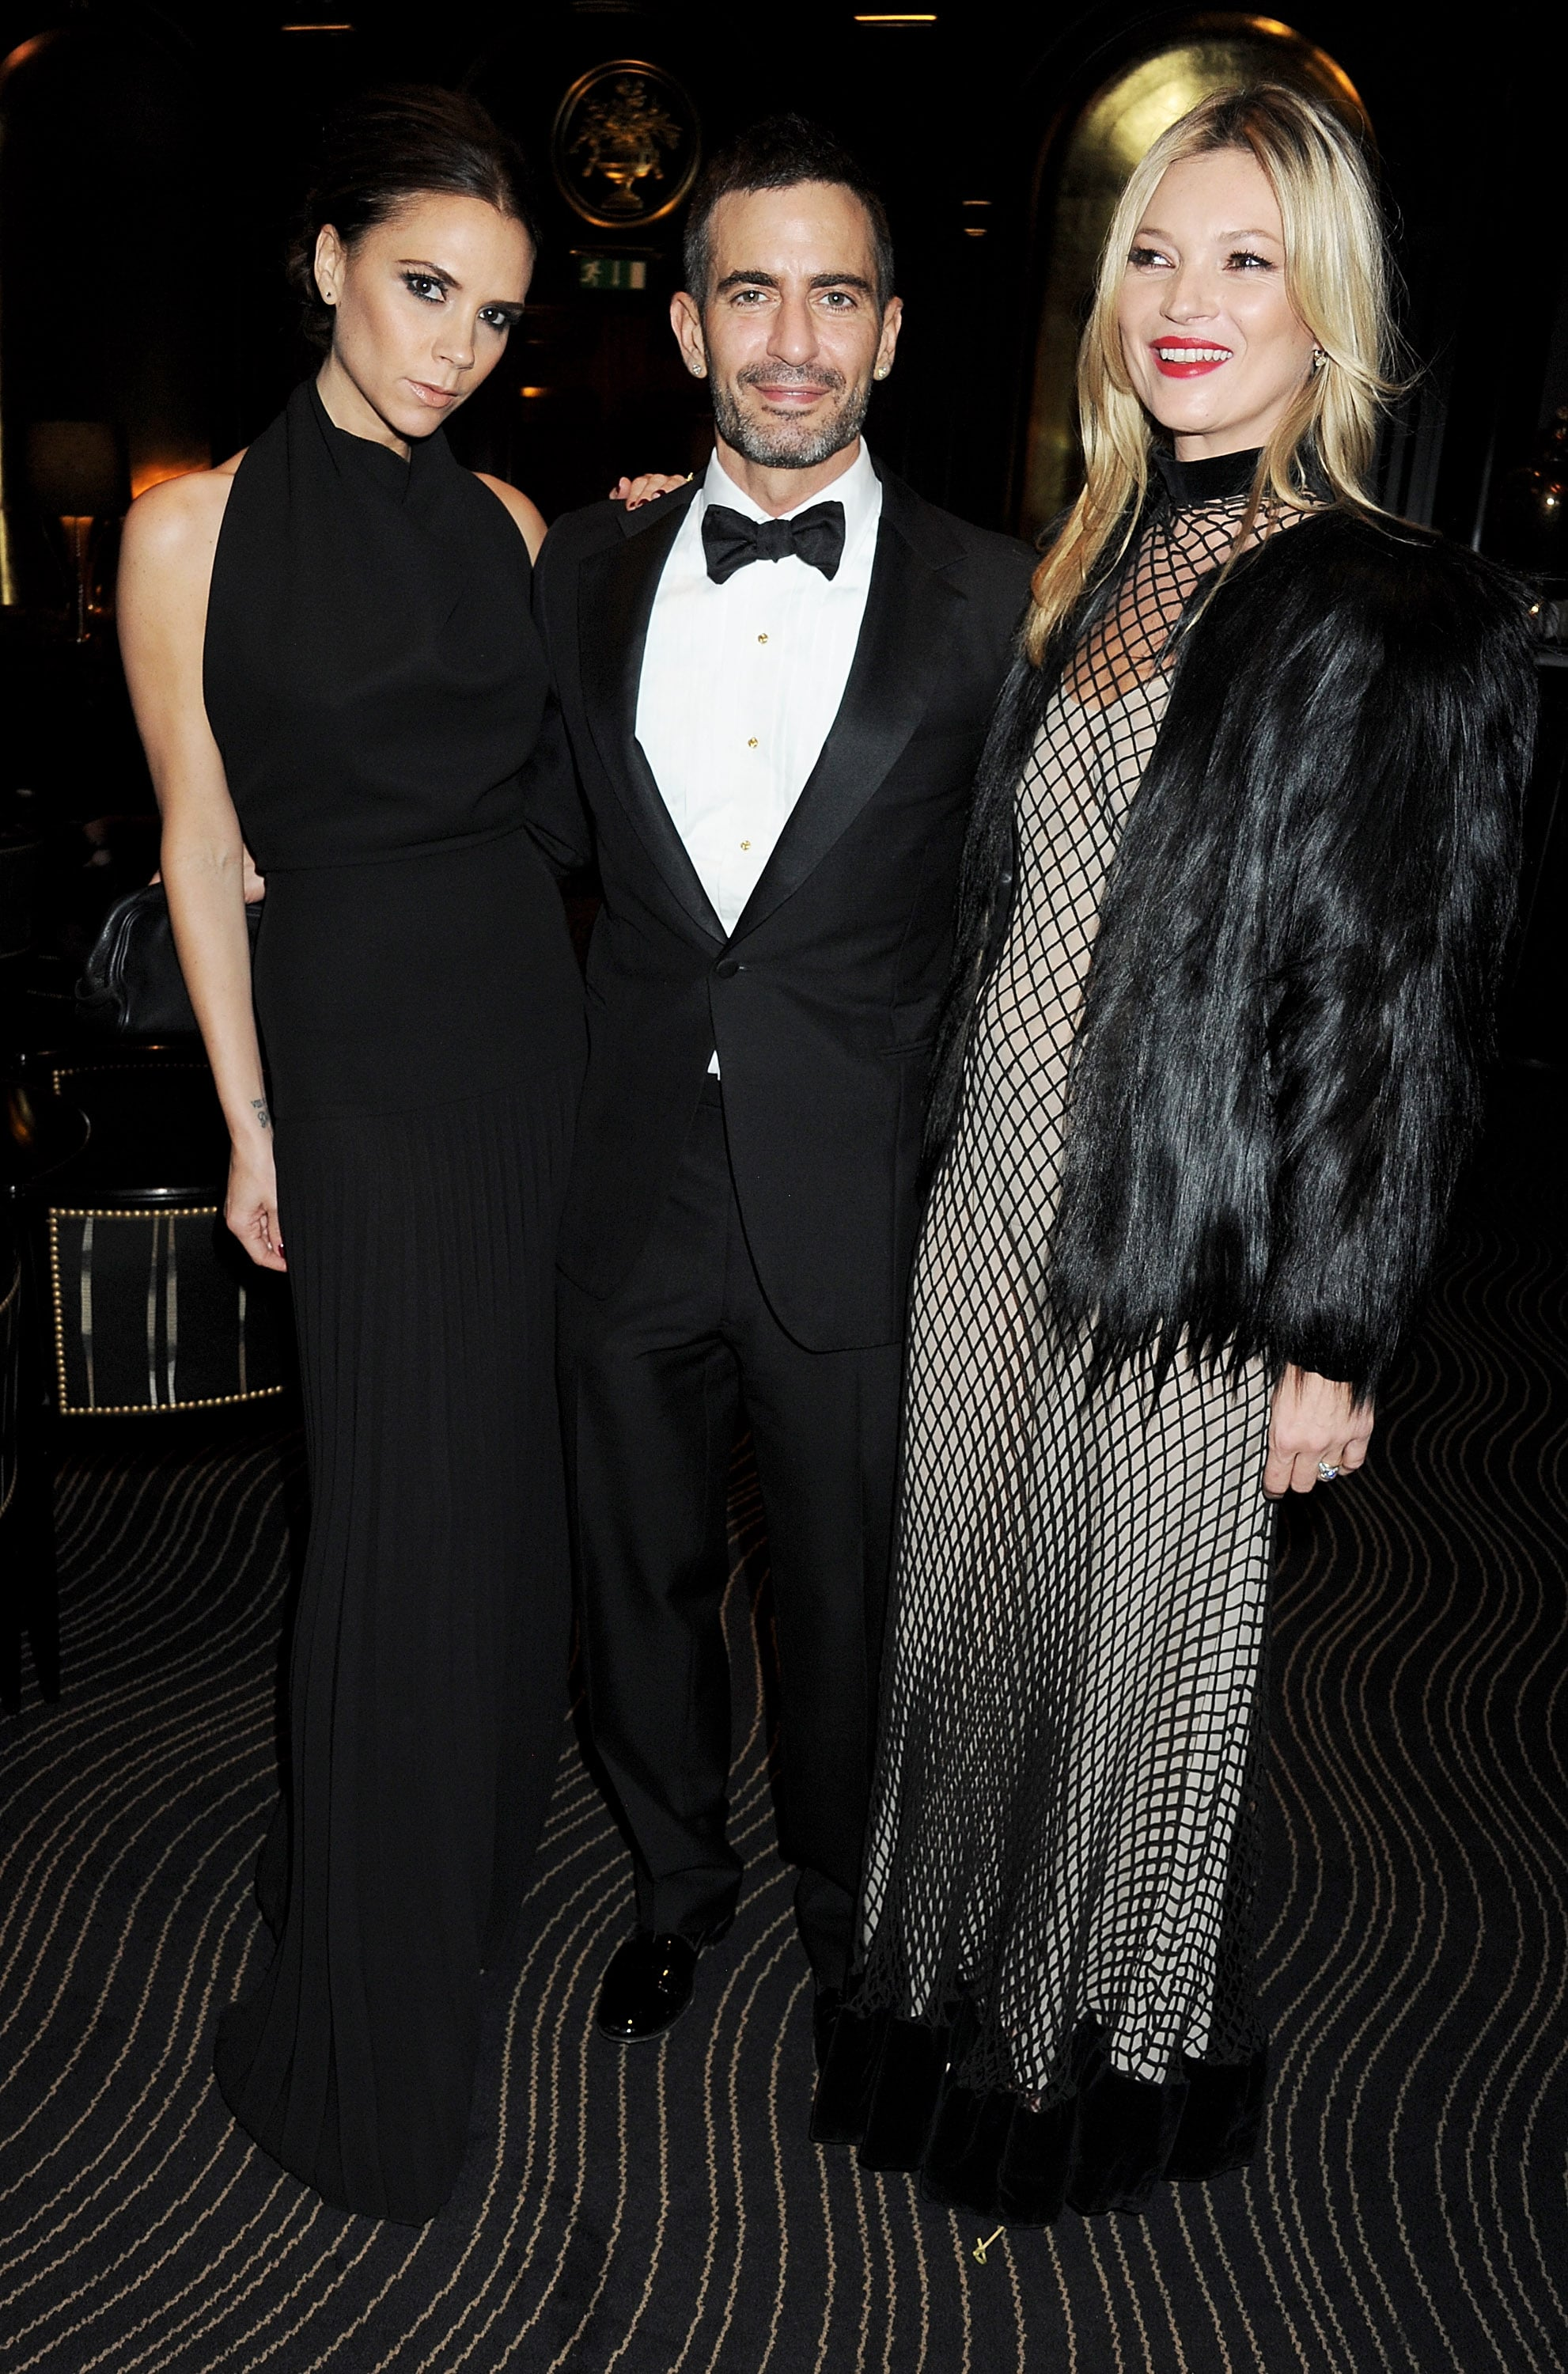 Victoria Beckham, Marc Jacobs and Kate Moss